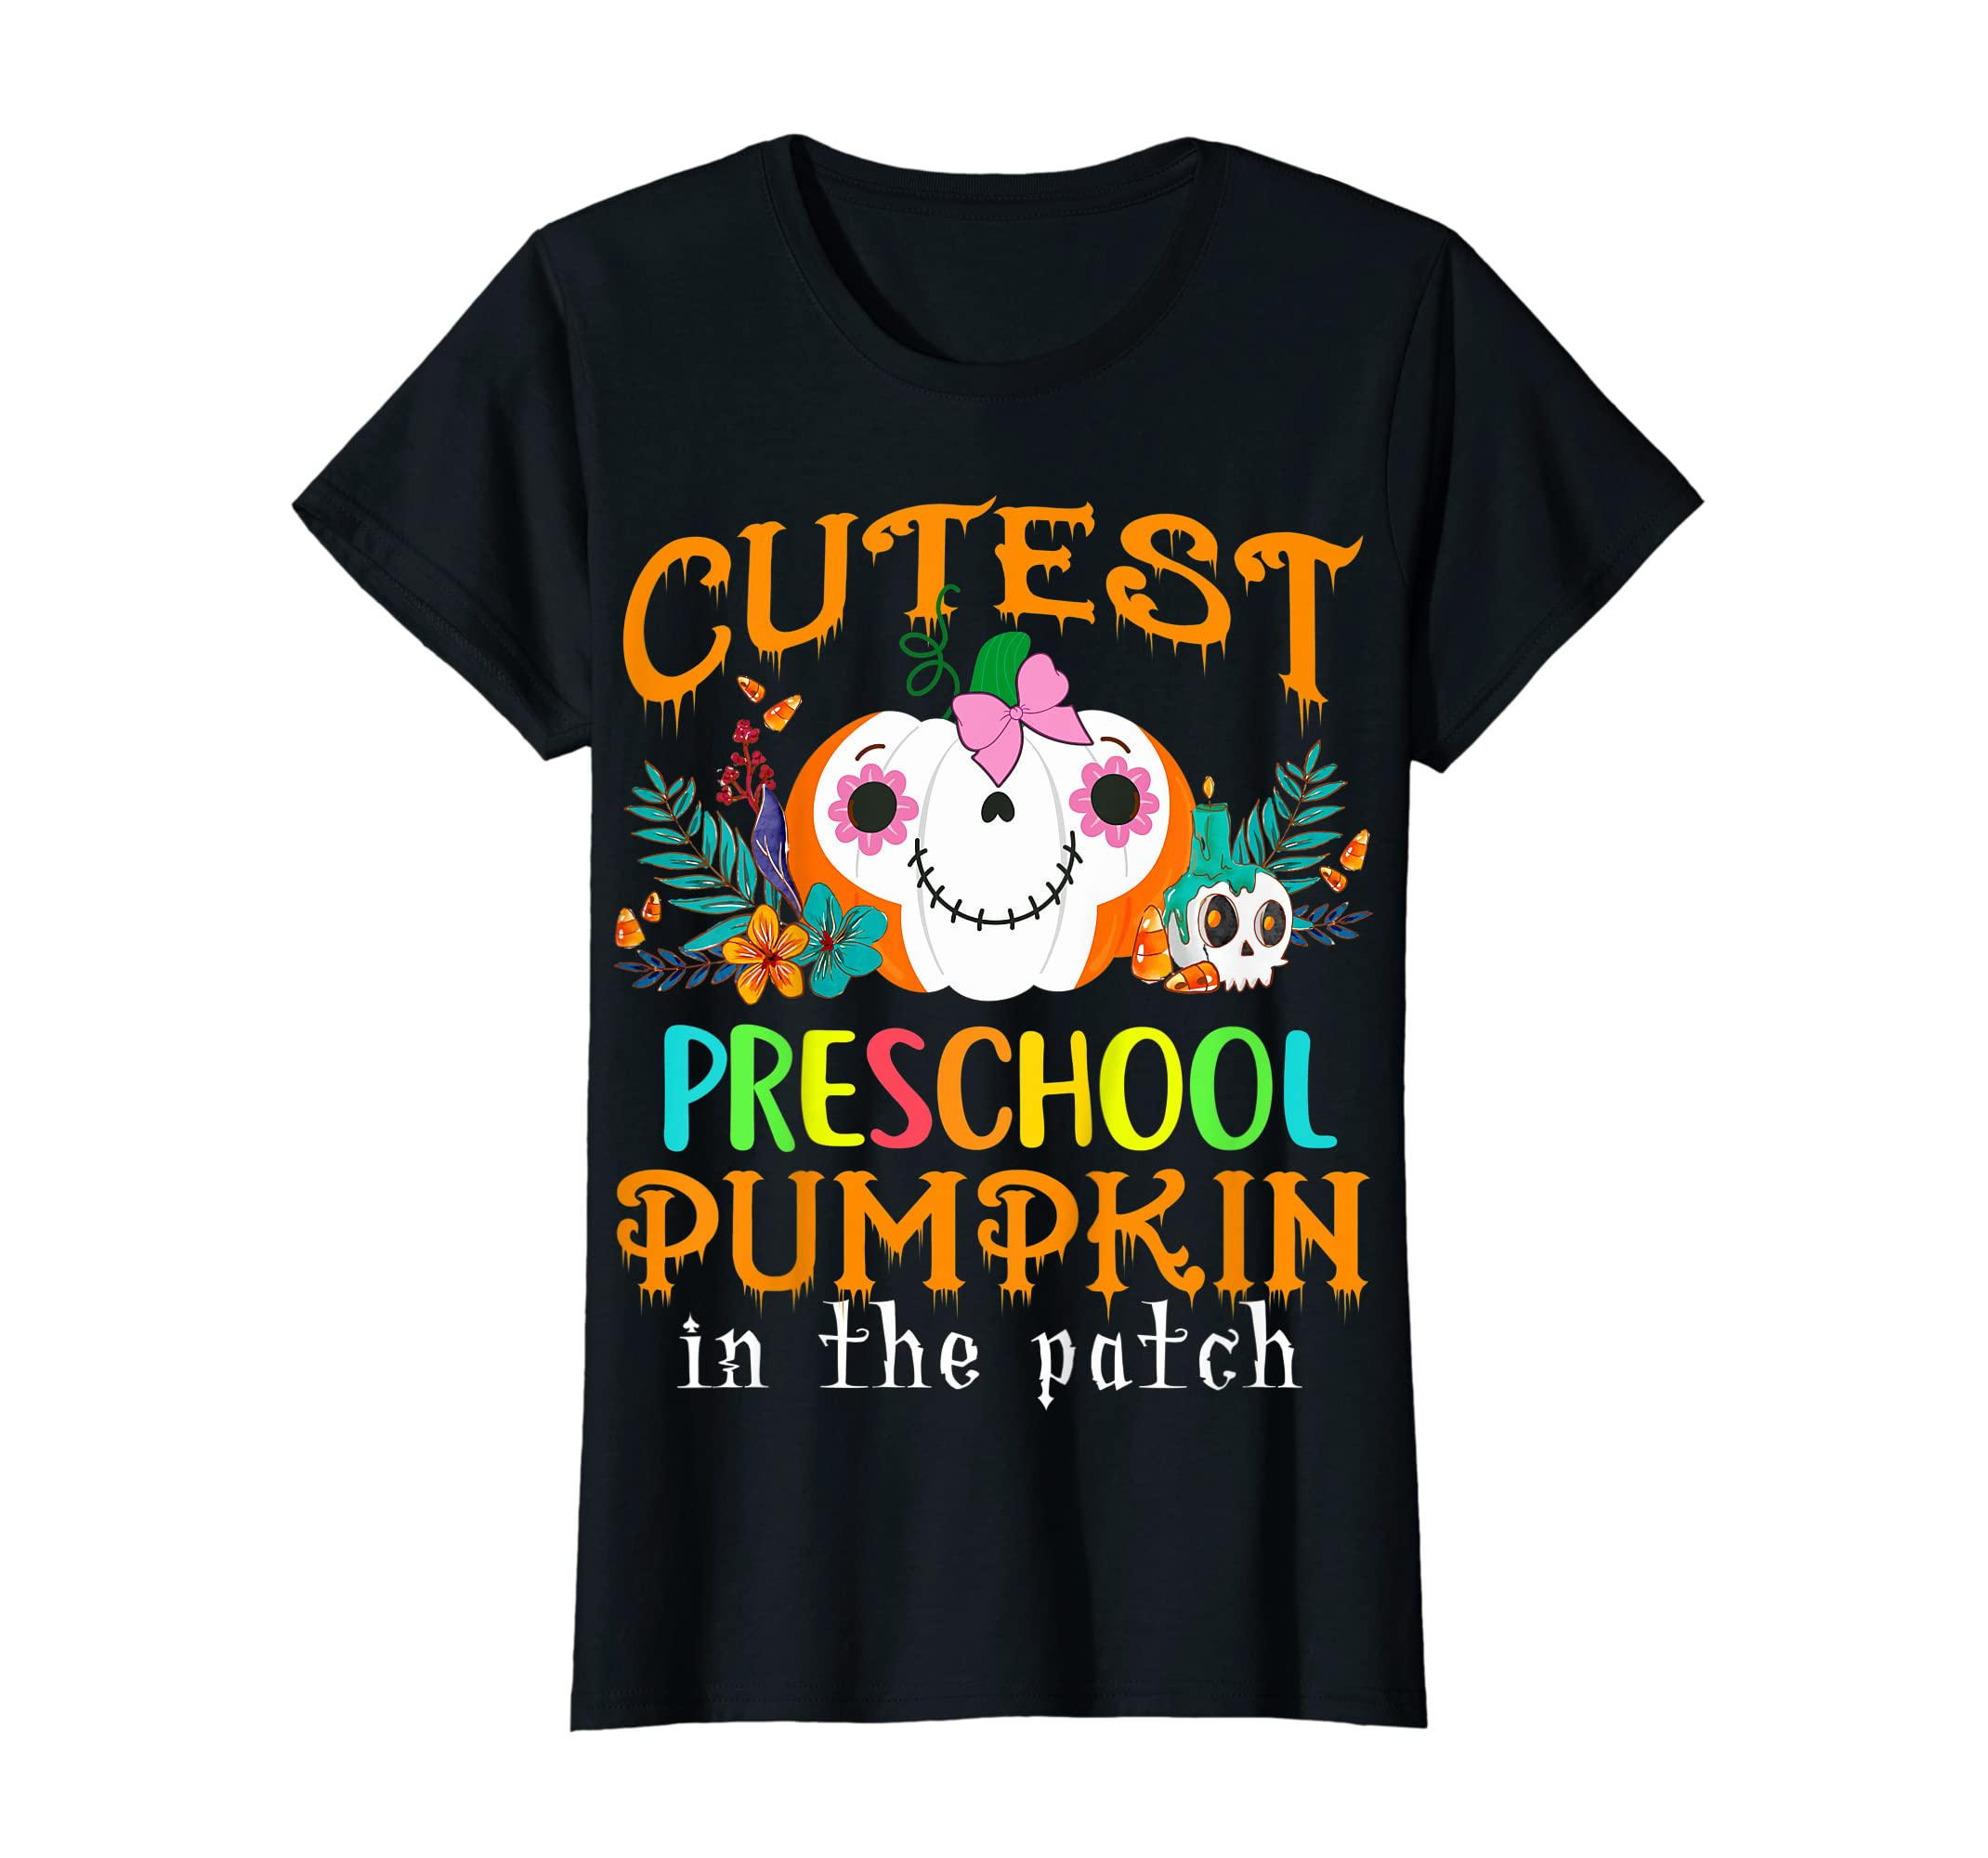 Kids Cutest Preschool Pumpkin In The Patch Halloween Costume Girl T-Shirt-Women's T-Shirt-Black